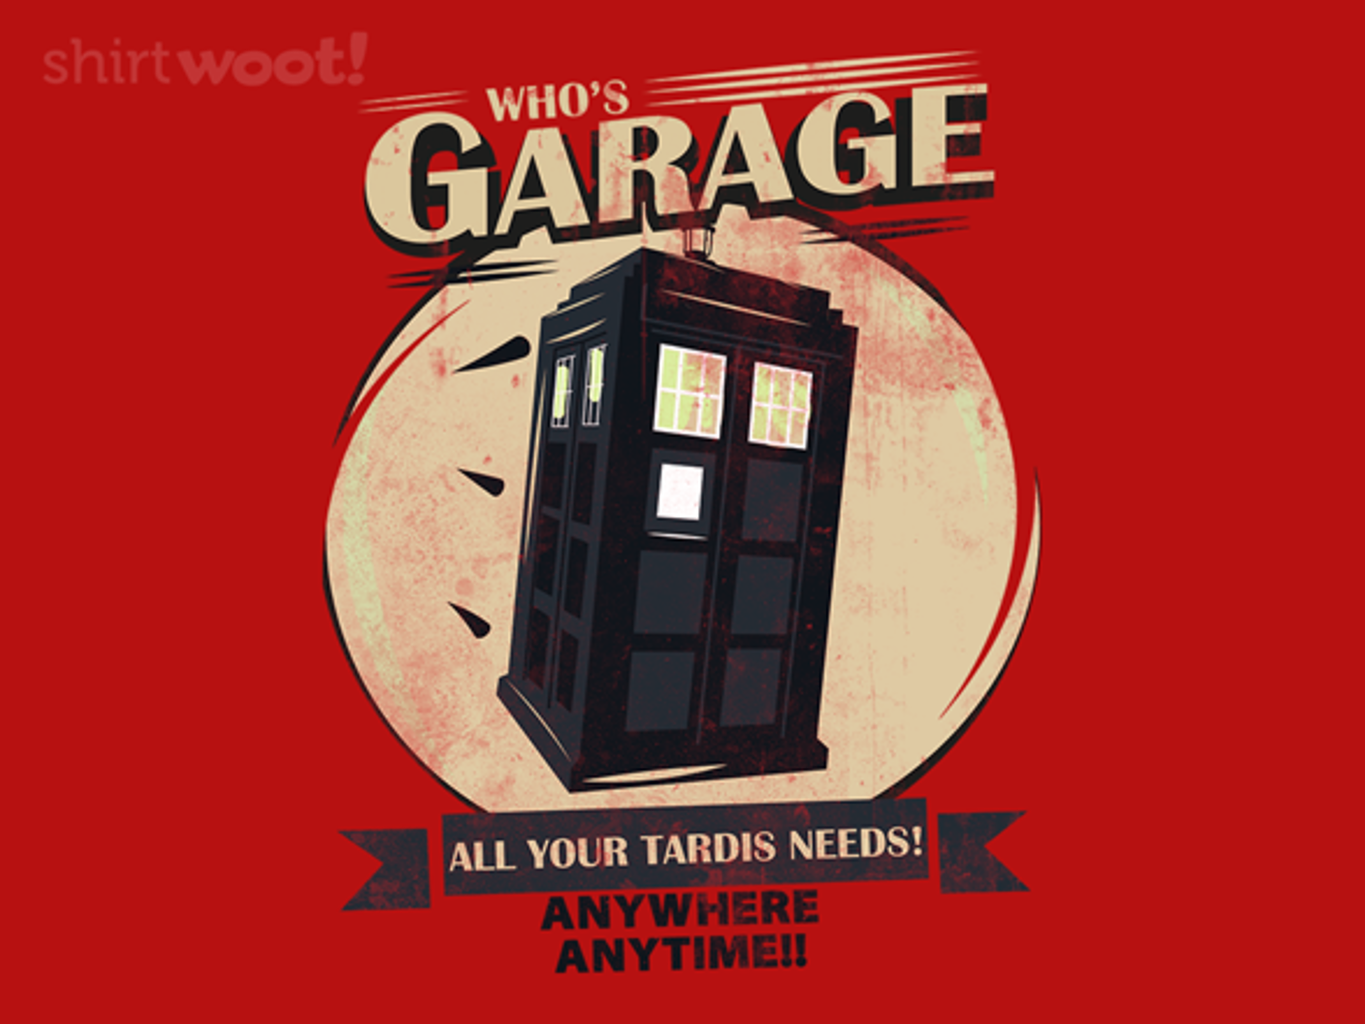 Woot!: Who's Garage